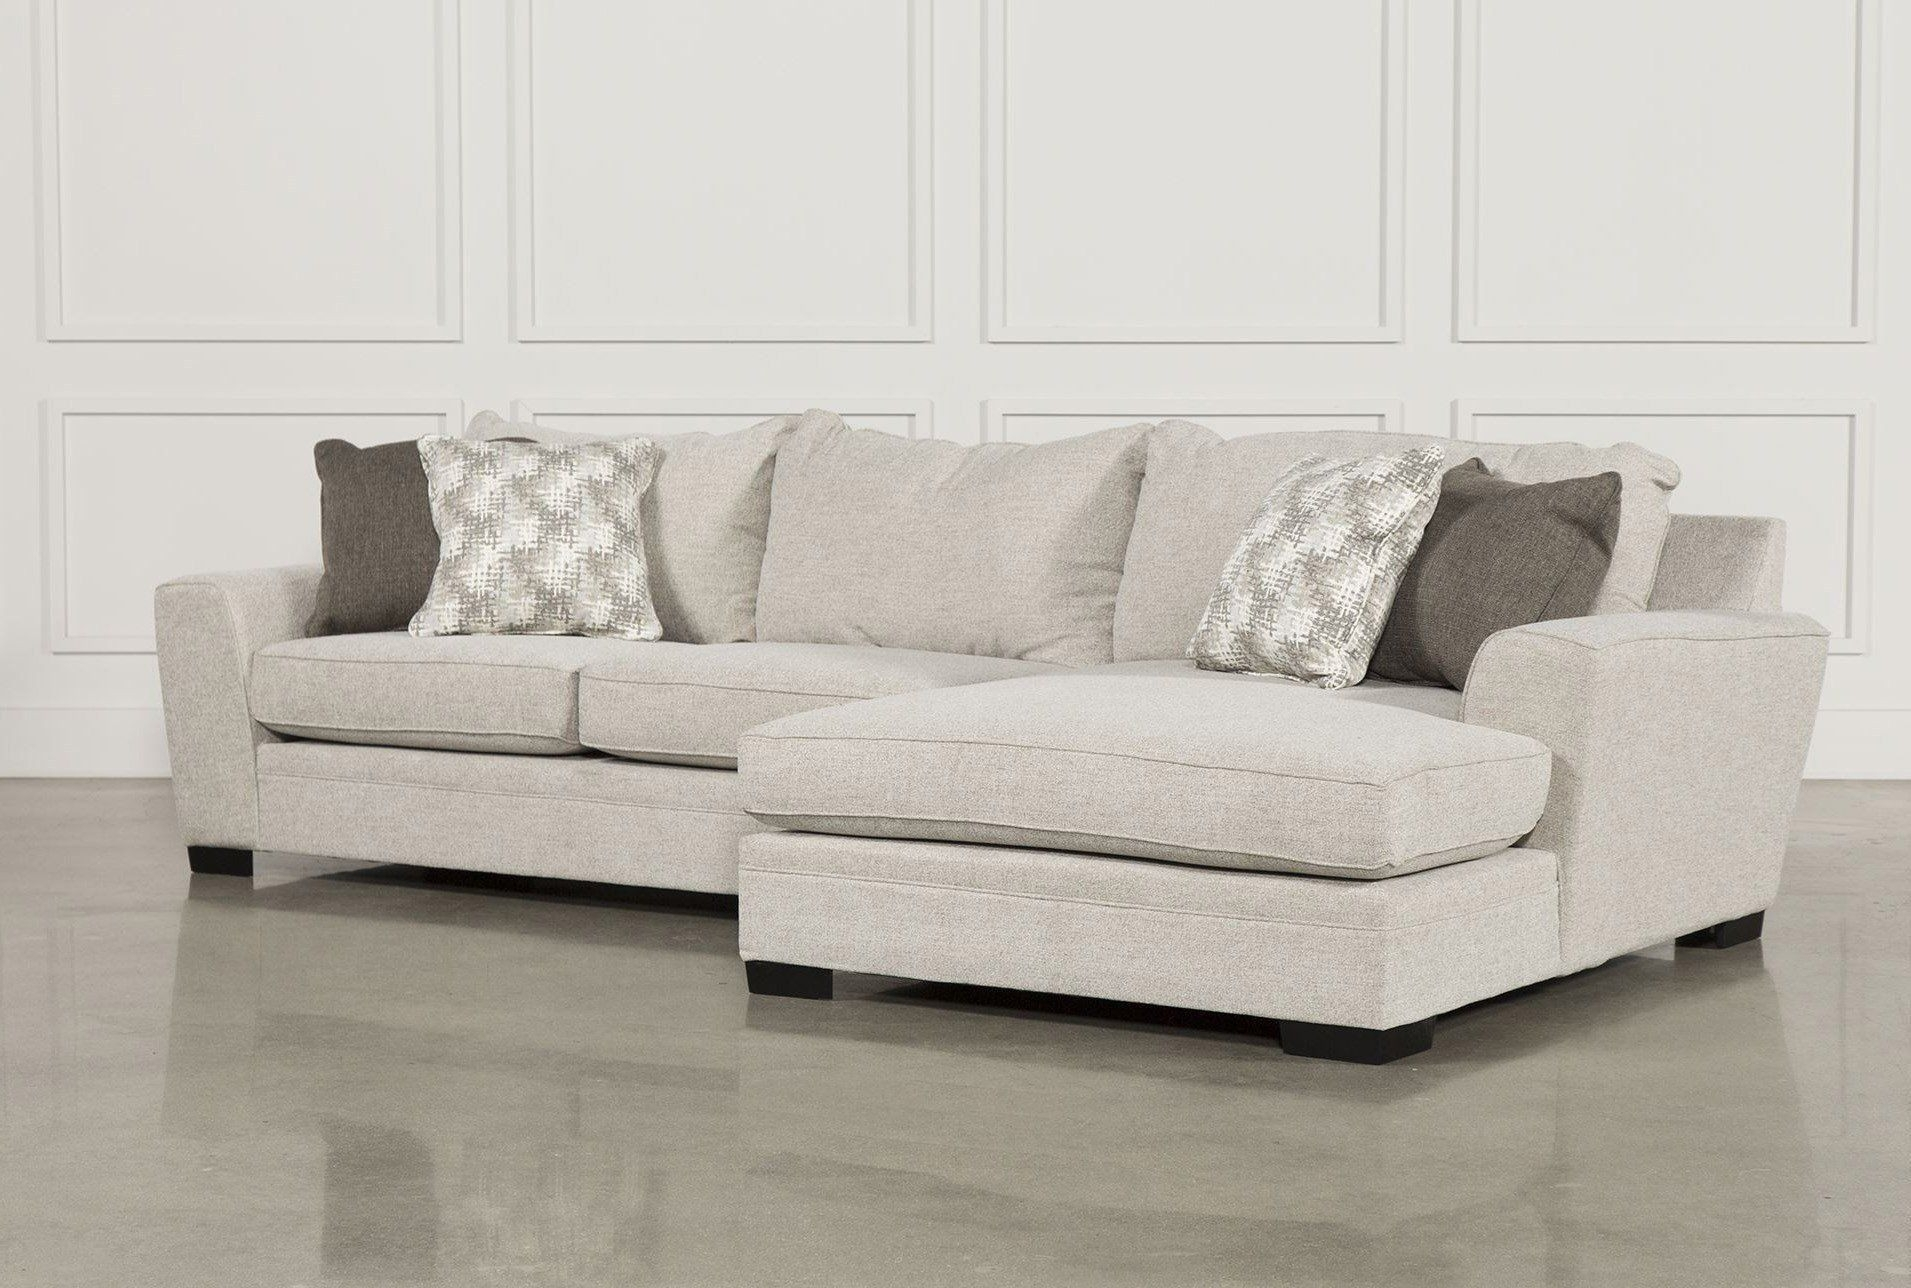 16 Luxury Serta Cooling Memoryfil Pillow | Beautiful Pillow Design Intended For Aquarius Dark Grey 2 Piece Sectionals With Raf Chaise (Photo 12 of 30)